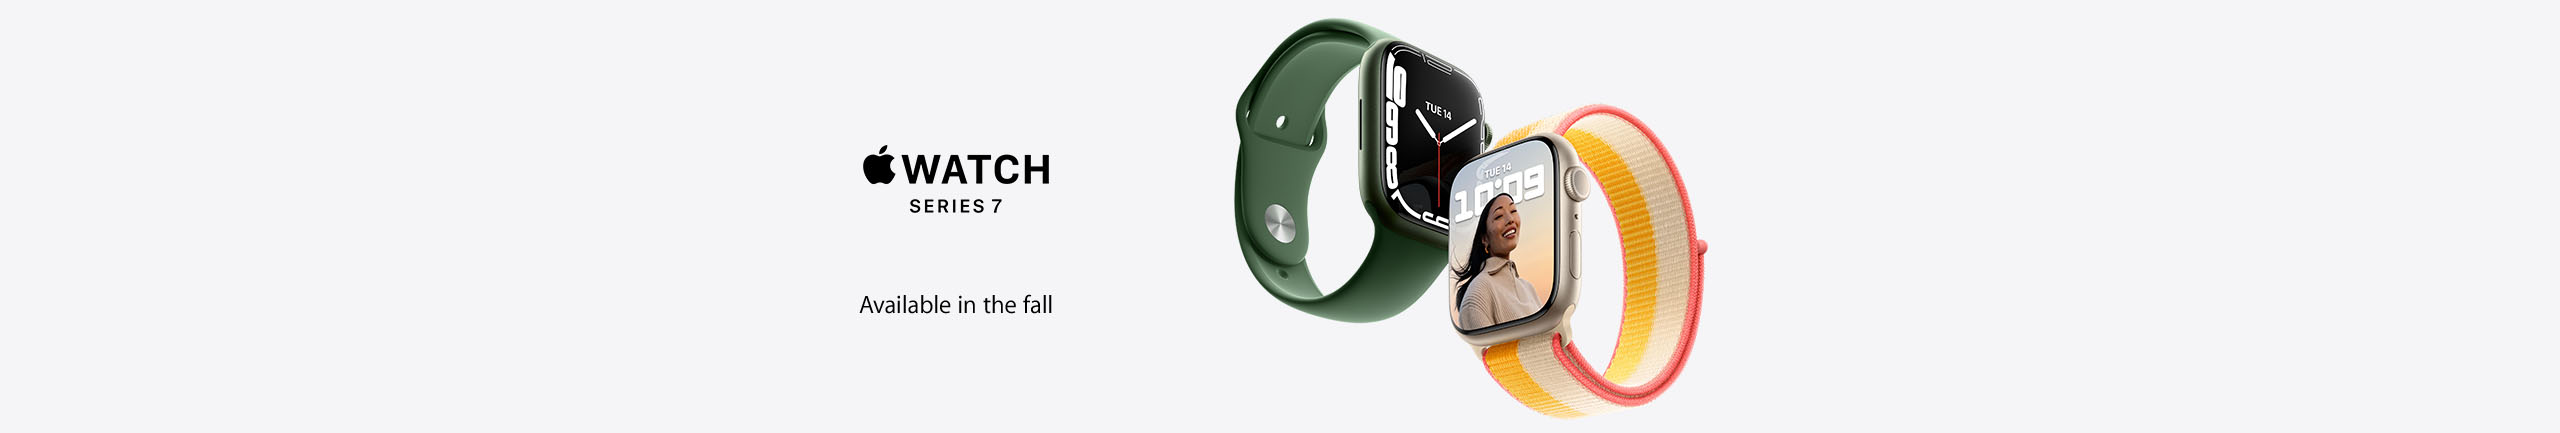 NPL Apple Watch 7 available in tha fall